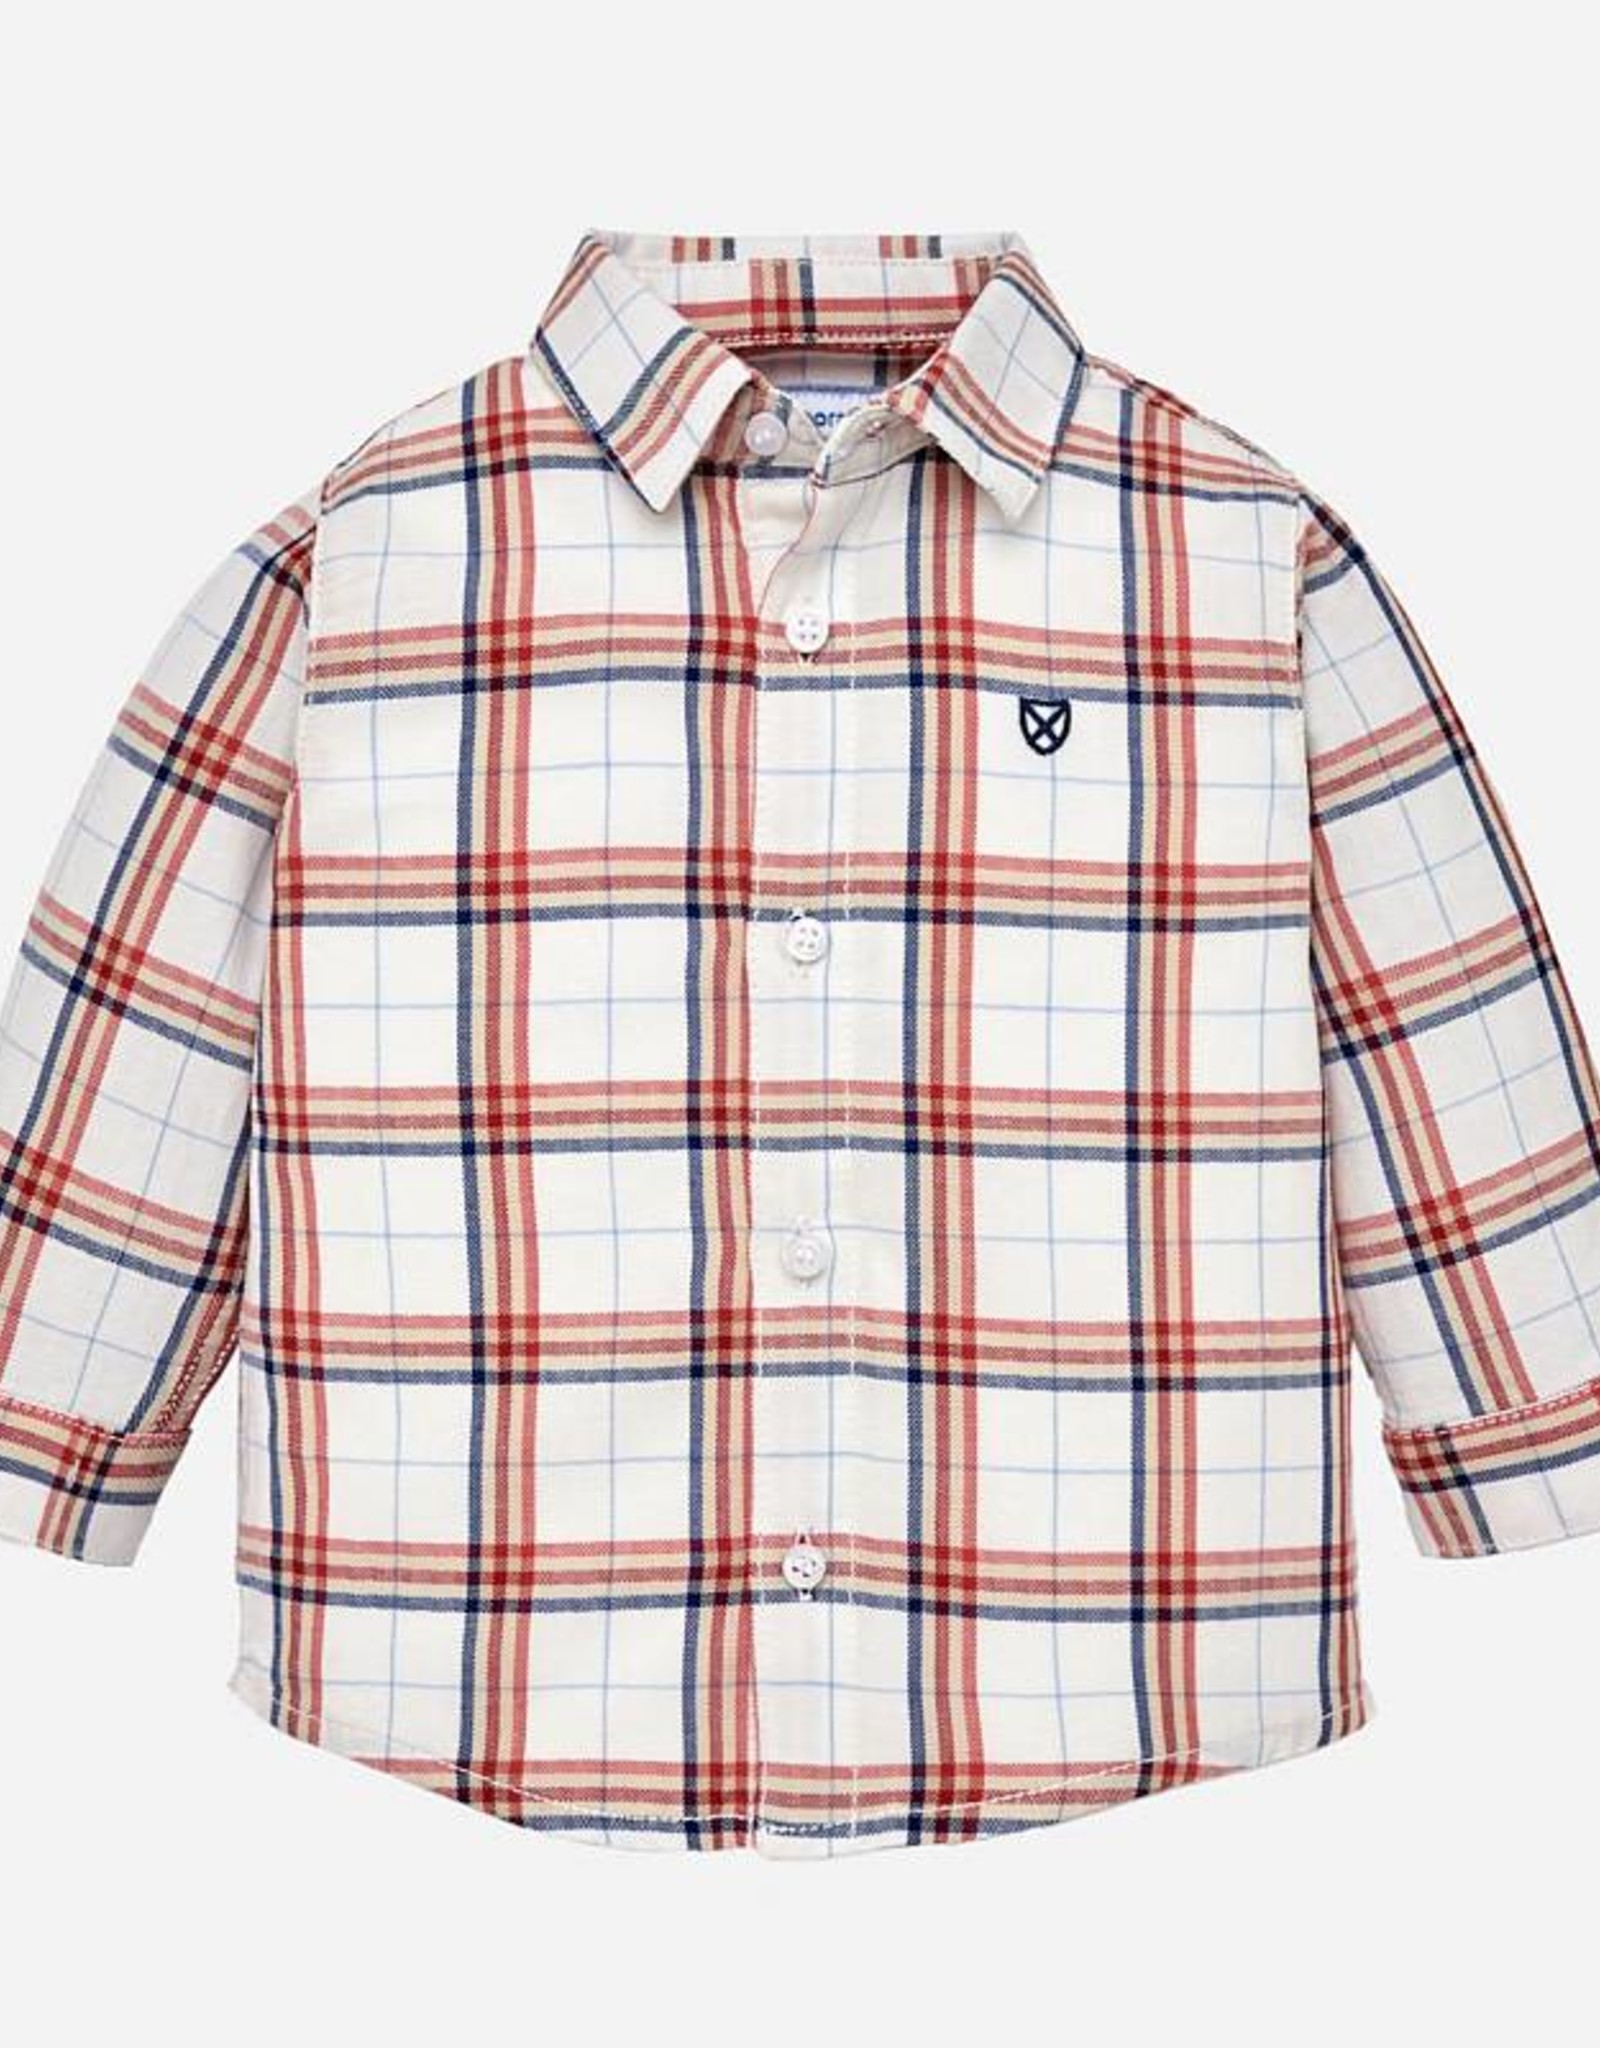 Mayoral Red/Blue Plaid Button-Up